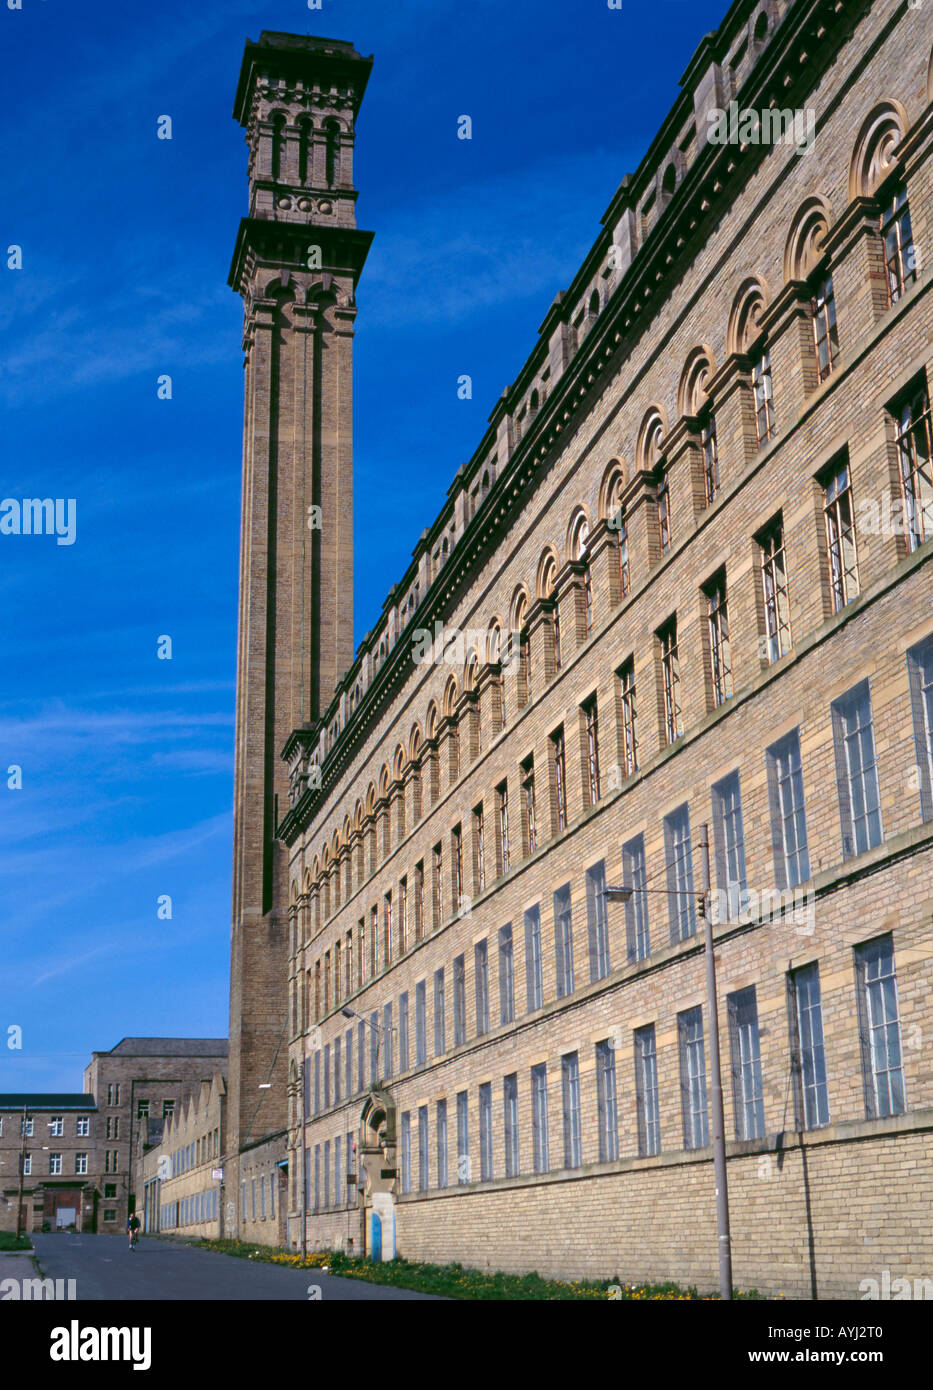 Listers Mill Bradford Stock Photos  Listers Mill Bradford Stock Images  Alamy